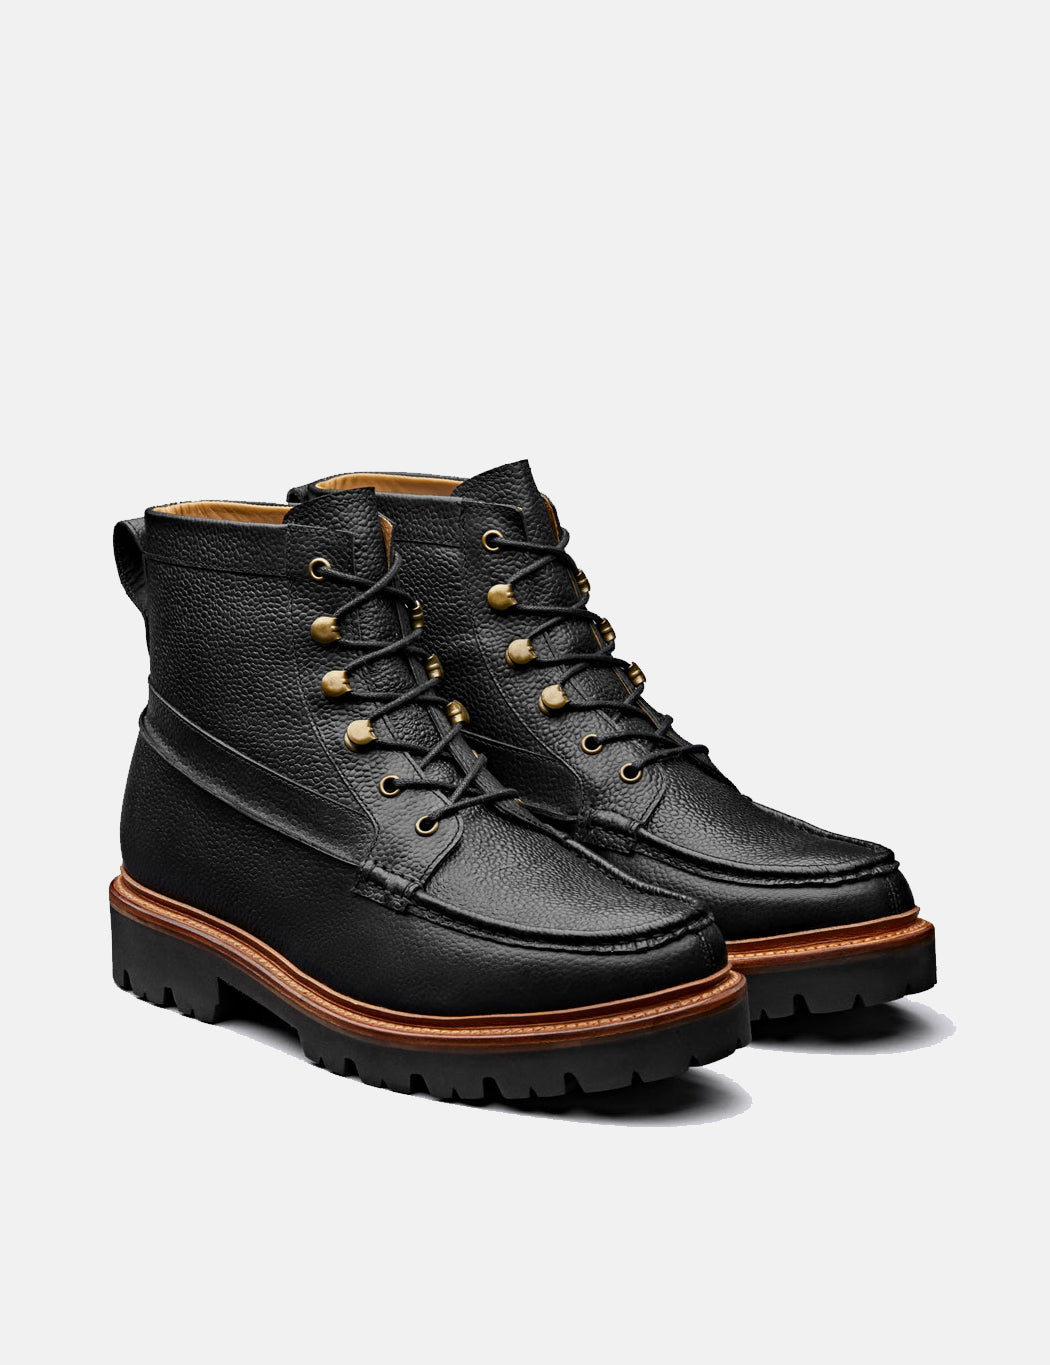 Grenson Rocco Boot (Leather) - Black   URBAN EXCESS.